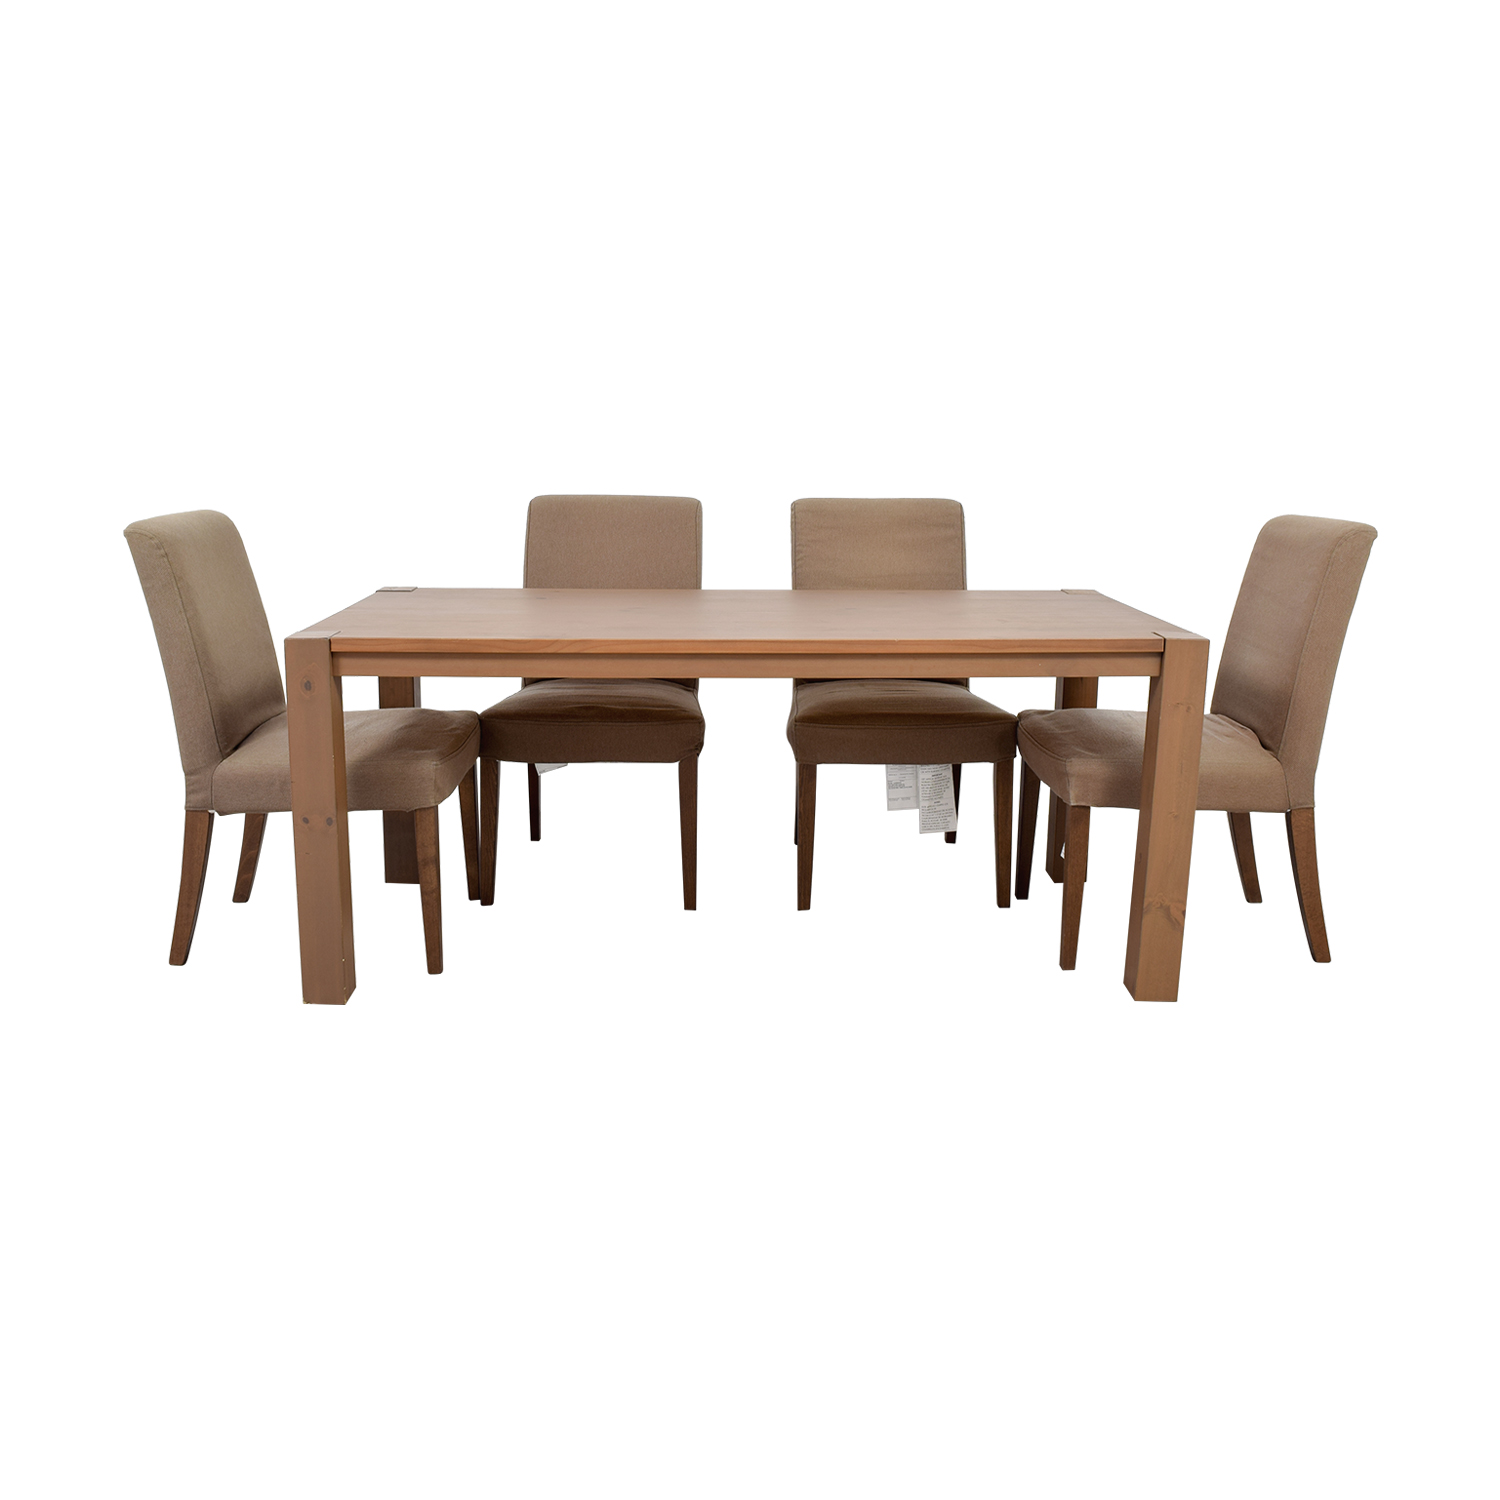 IKEA IKEA Dining Table Set with Henriksdal Chairs nj